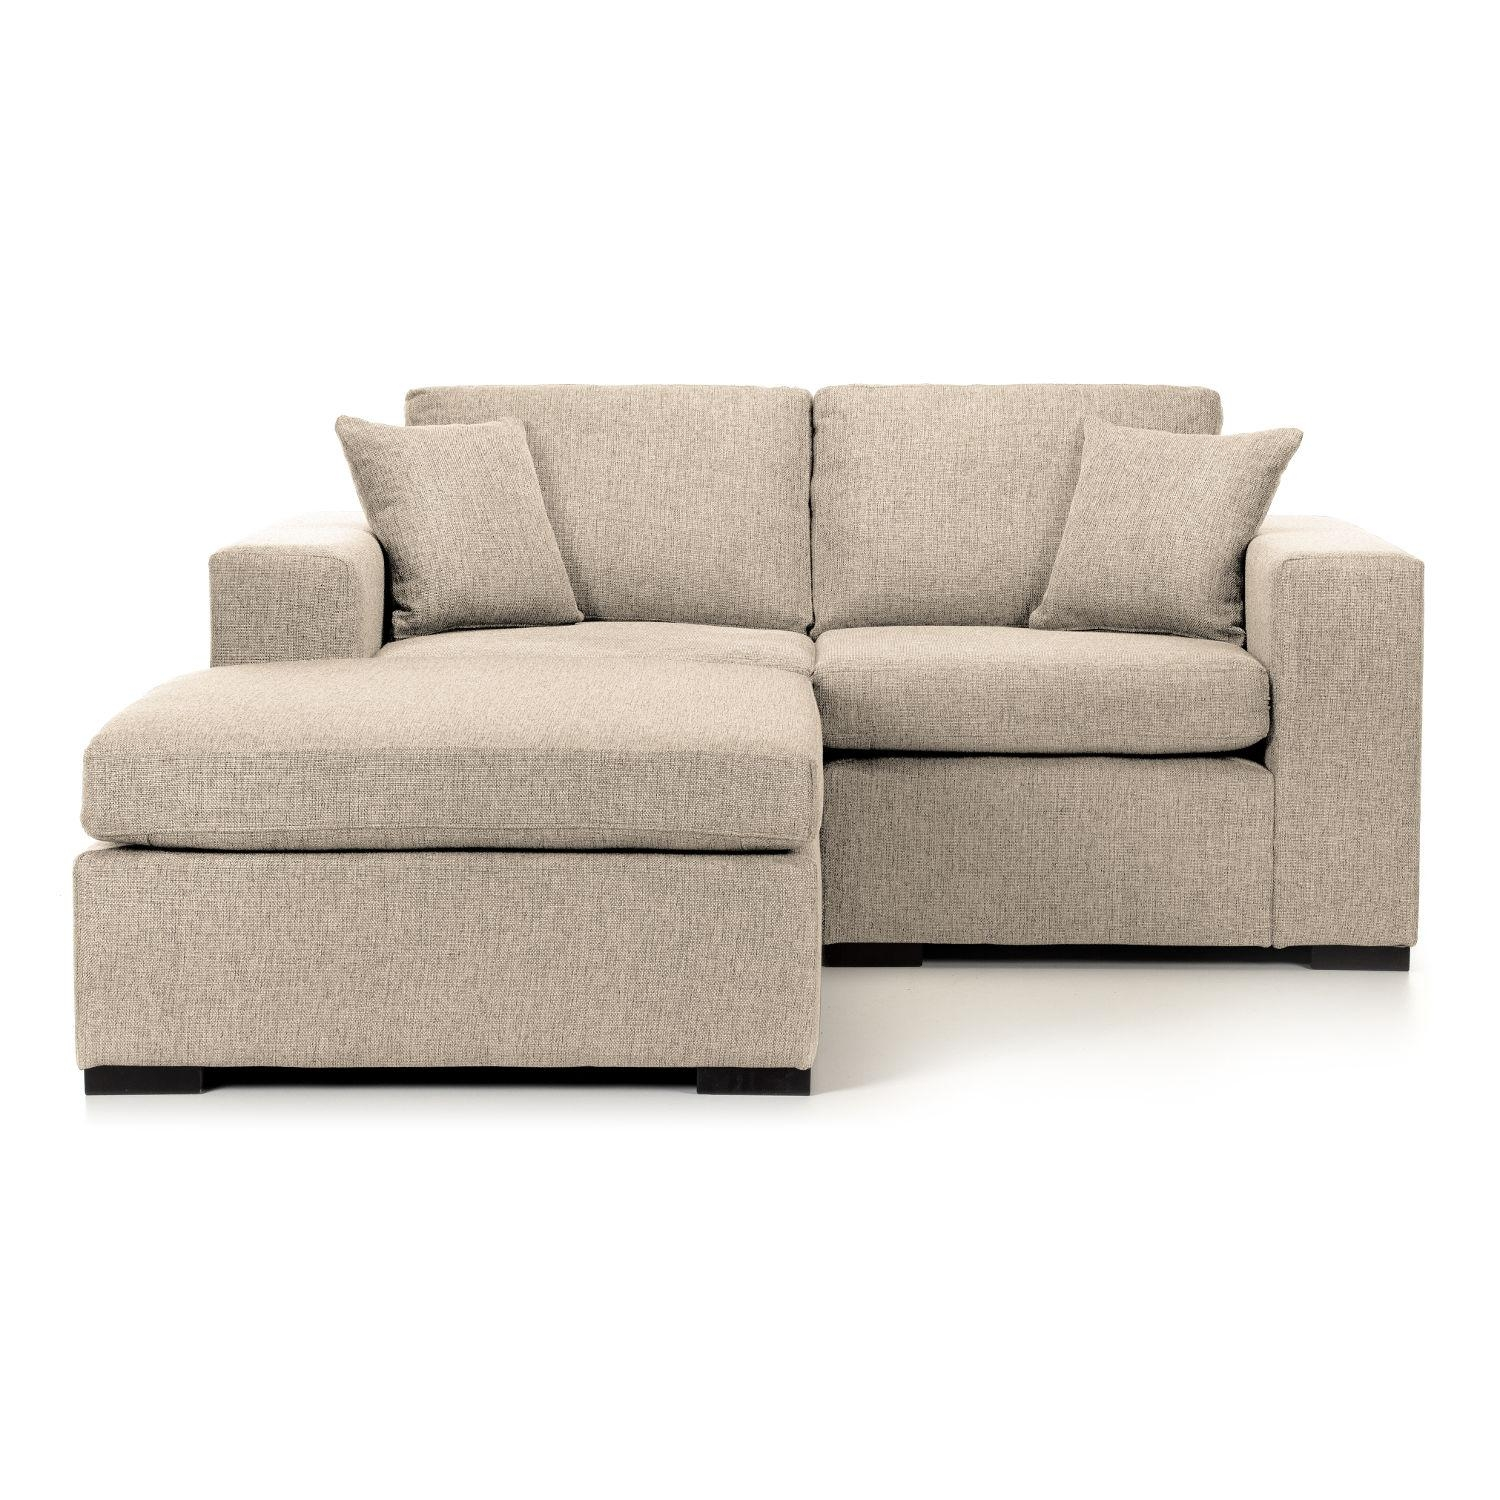 Sofas Center : Small Chaise Sofa Sofas With Lounge Storage Throughout Small Modular Sectional Sofa (View 10 of 20)